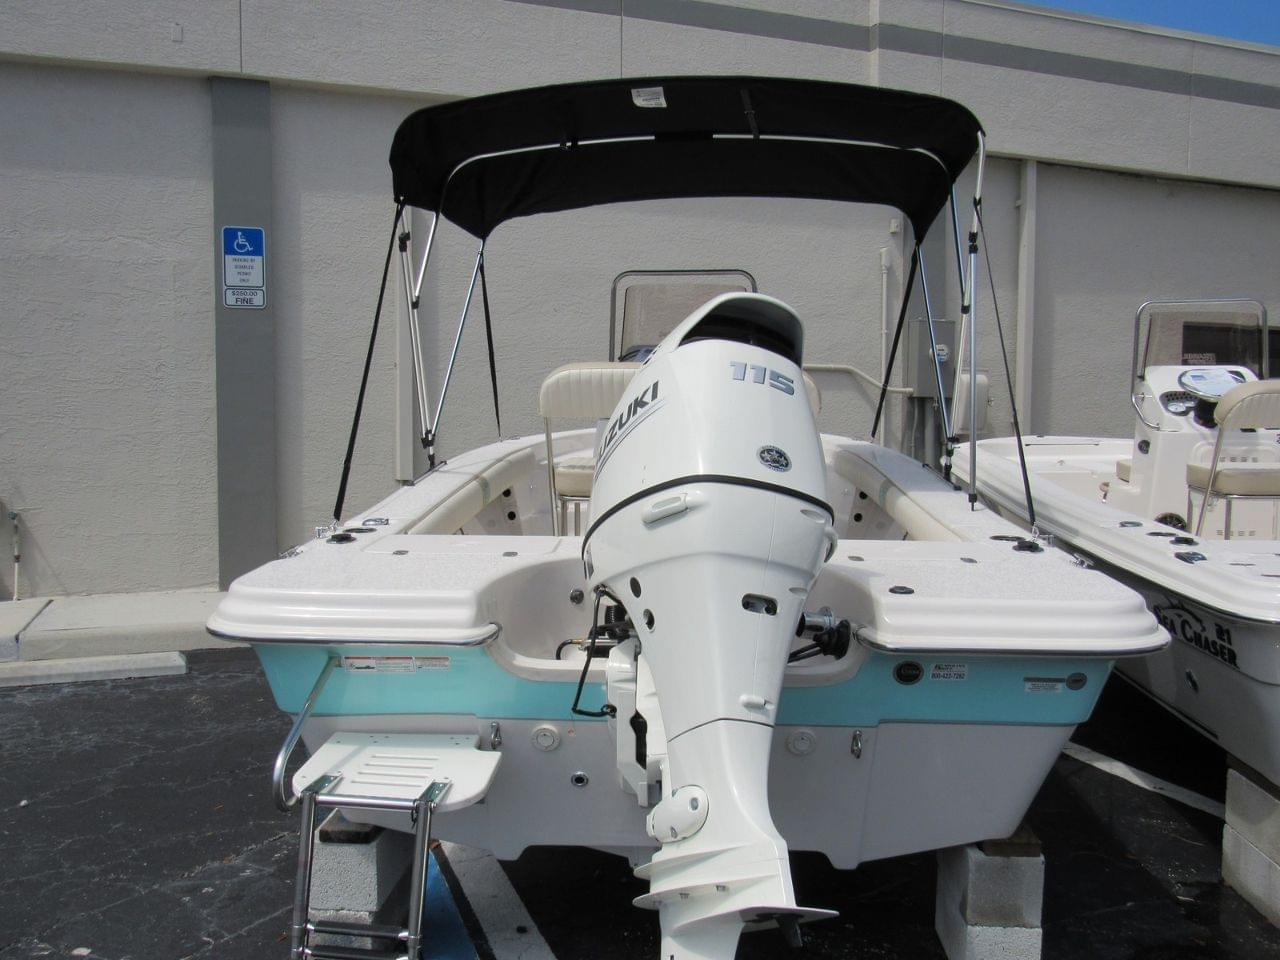 Sea Chaser Boats >> New 2018 Sea-chaser 19 Sea Skiff, Stock #86078-B1 - The Boat House